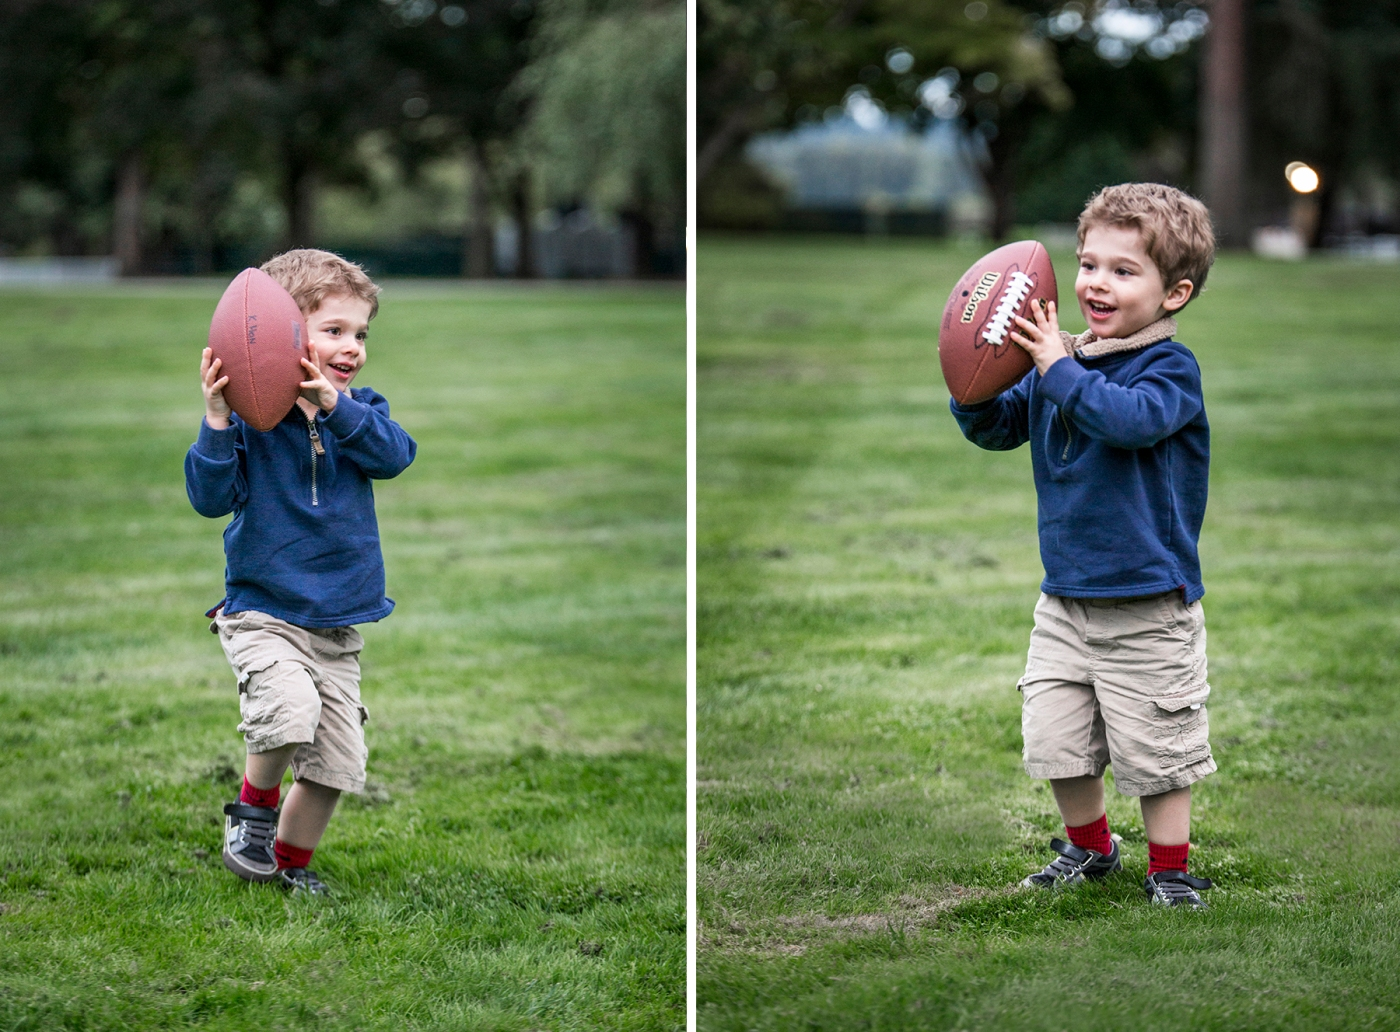 sh_family_session_photography-by-the_royal-squirrel-2016-marymoor-kieran-with-futball-marymoor-by-the-royal-squirrel-jane-speleers-2016